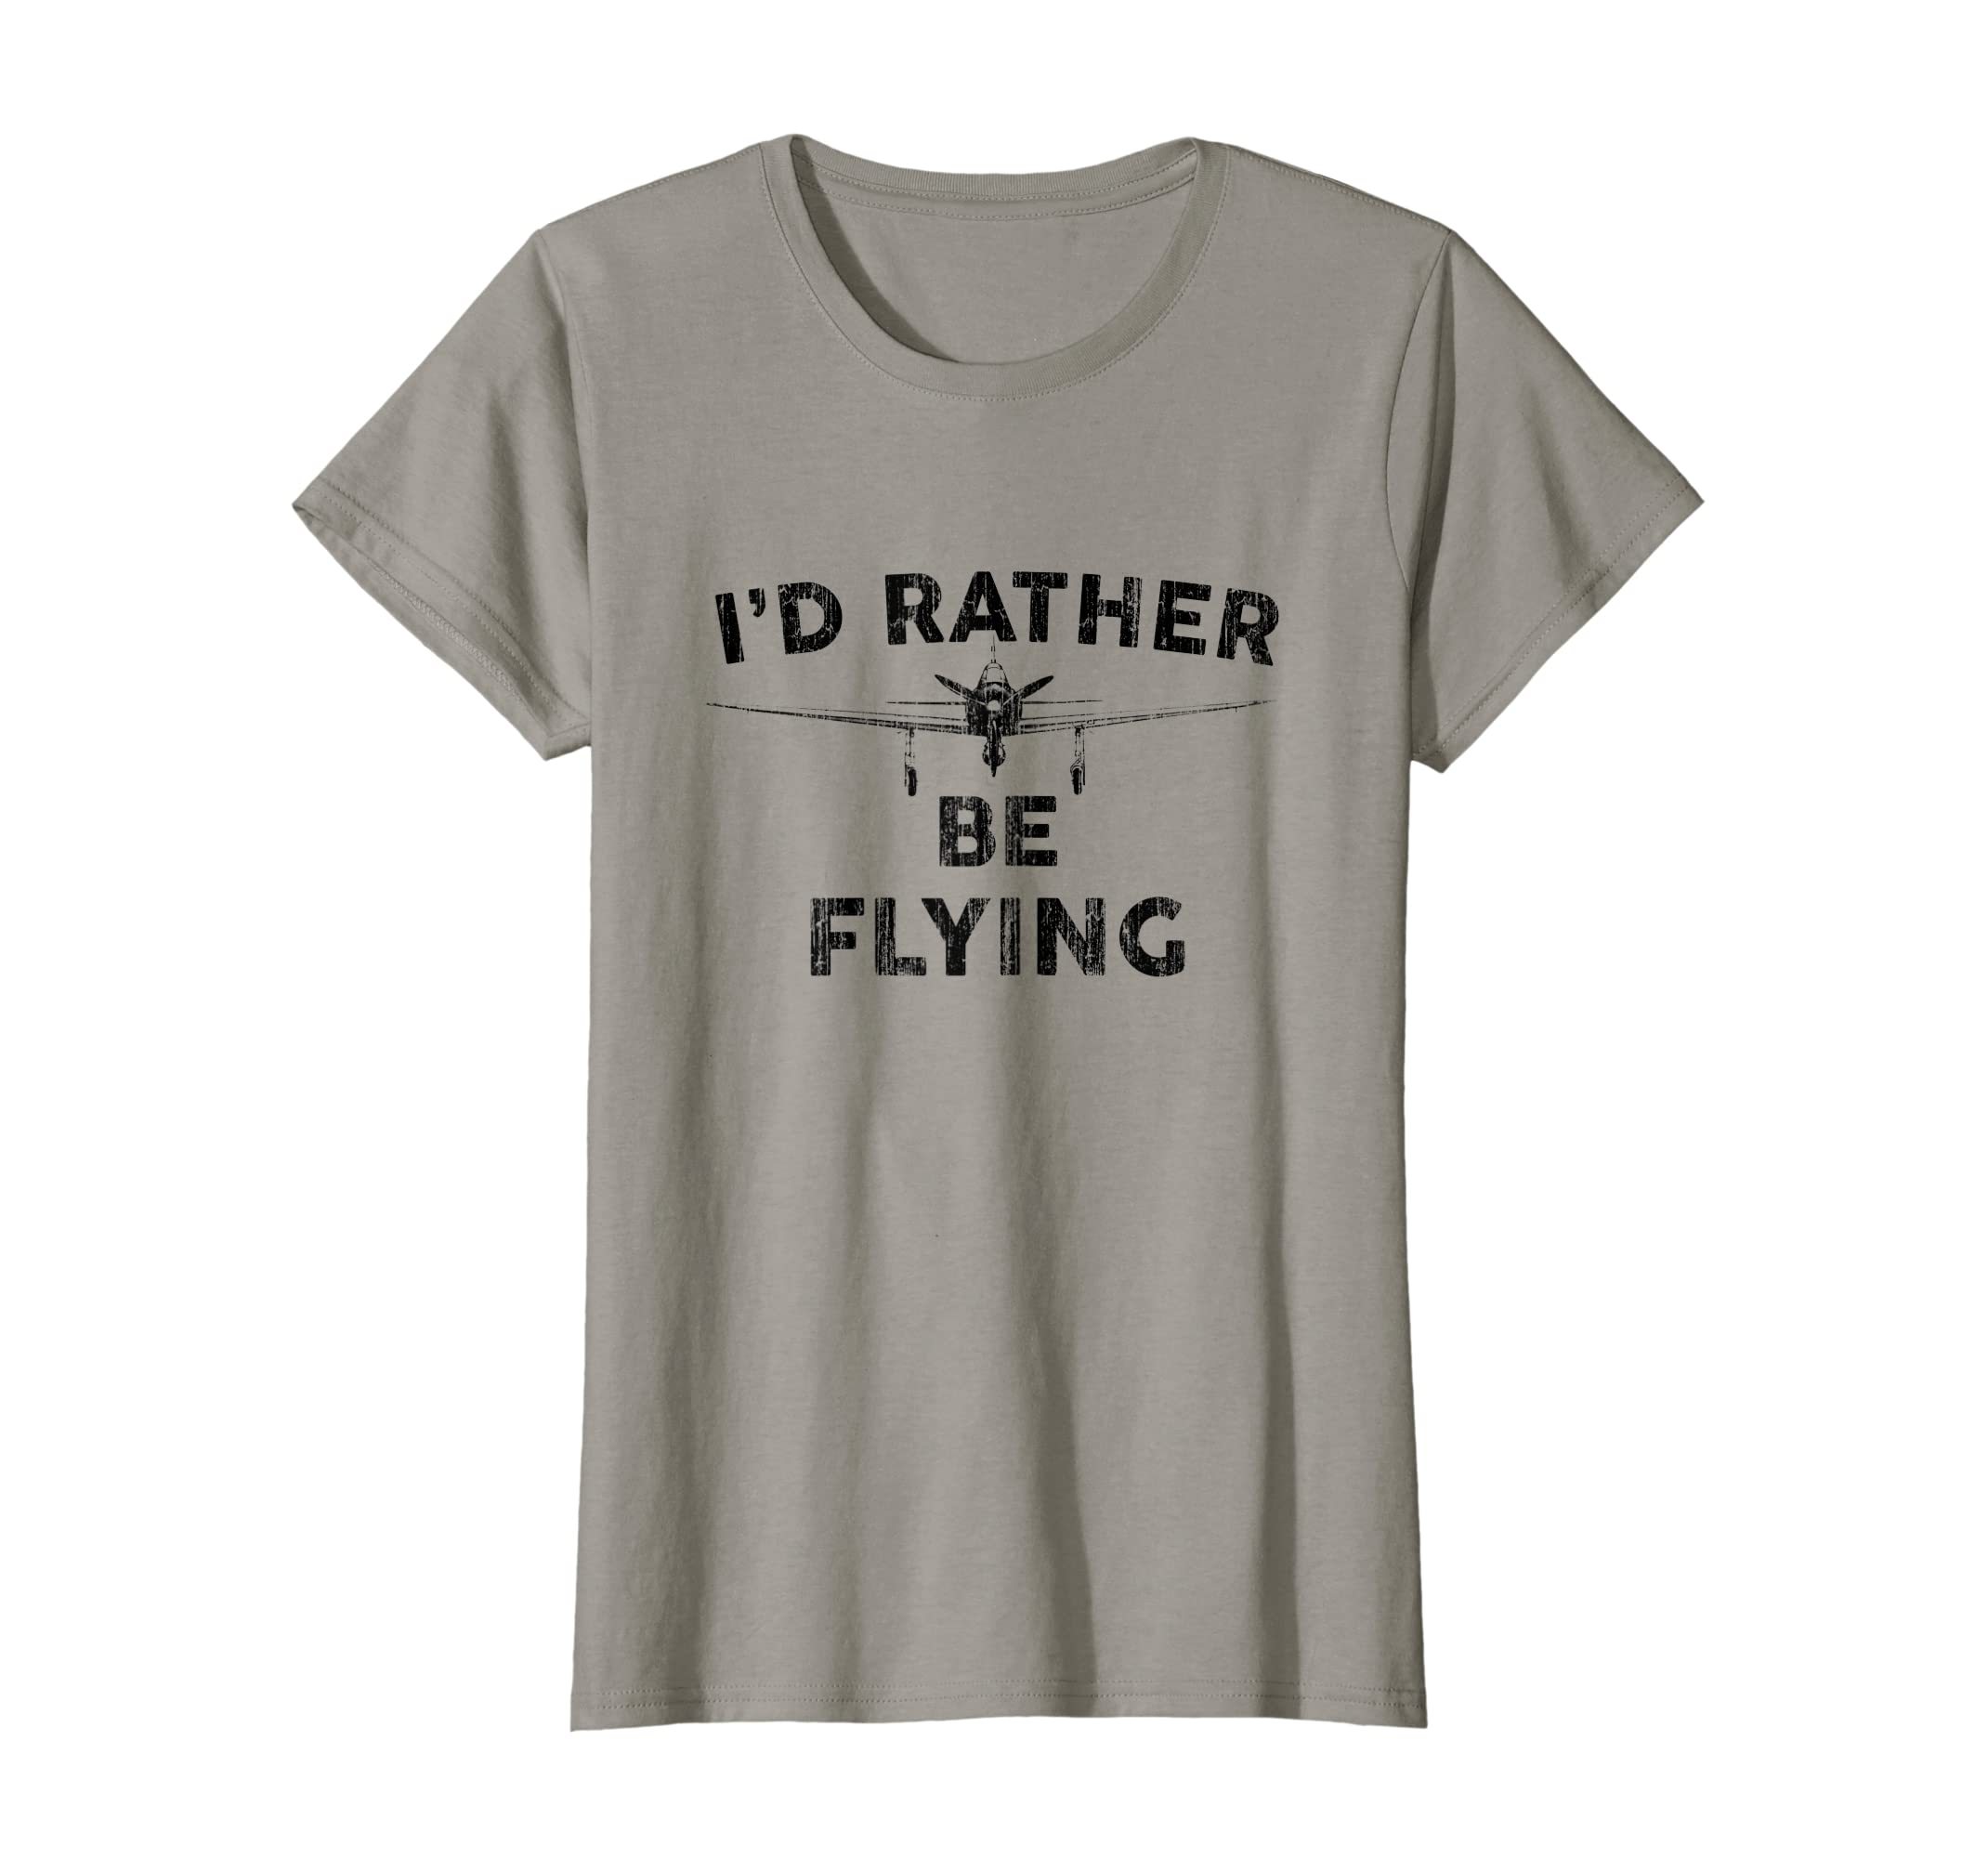 c9f586676a Amazon.com: I'd Rather be Flying T shirt Funny Airplane Aviation Pilot:  Clothing